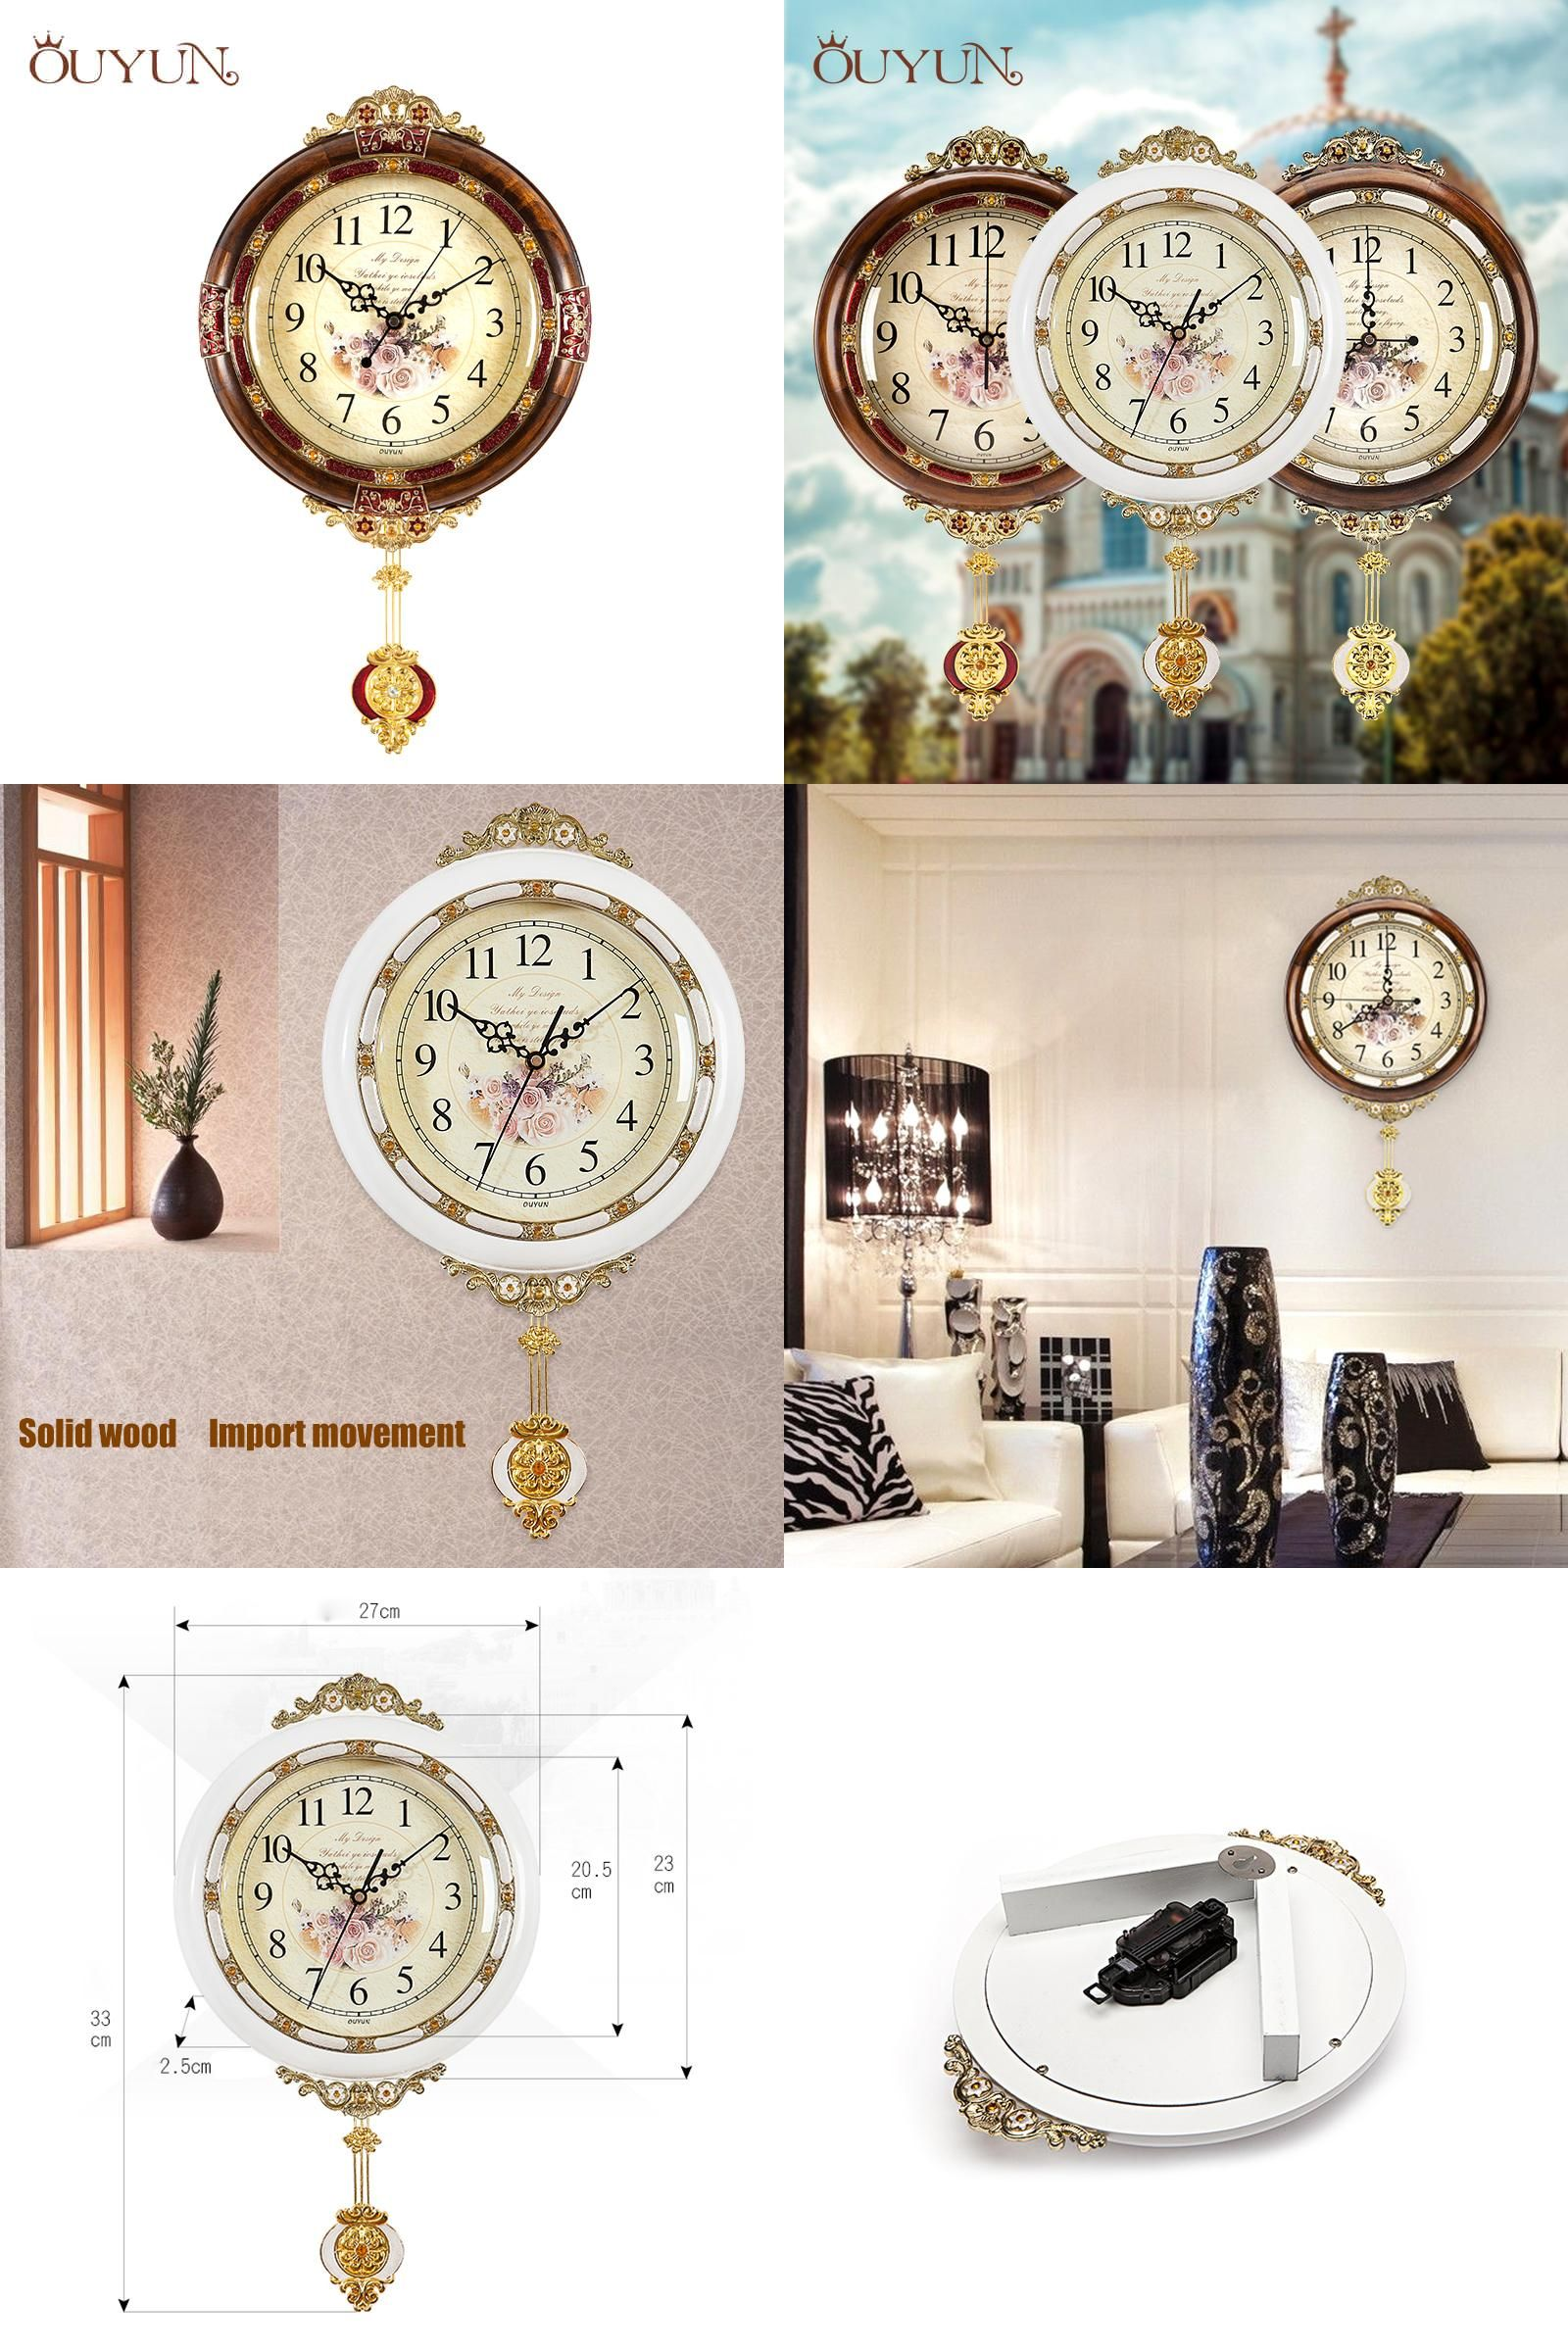 Visit to buy ouyun solid wood wall clock retro swinging walls visit to buy ouyun solid wood wall clock retro swinging walls clocks mingle quiet amipublicfo Images